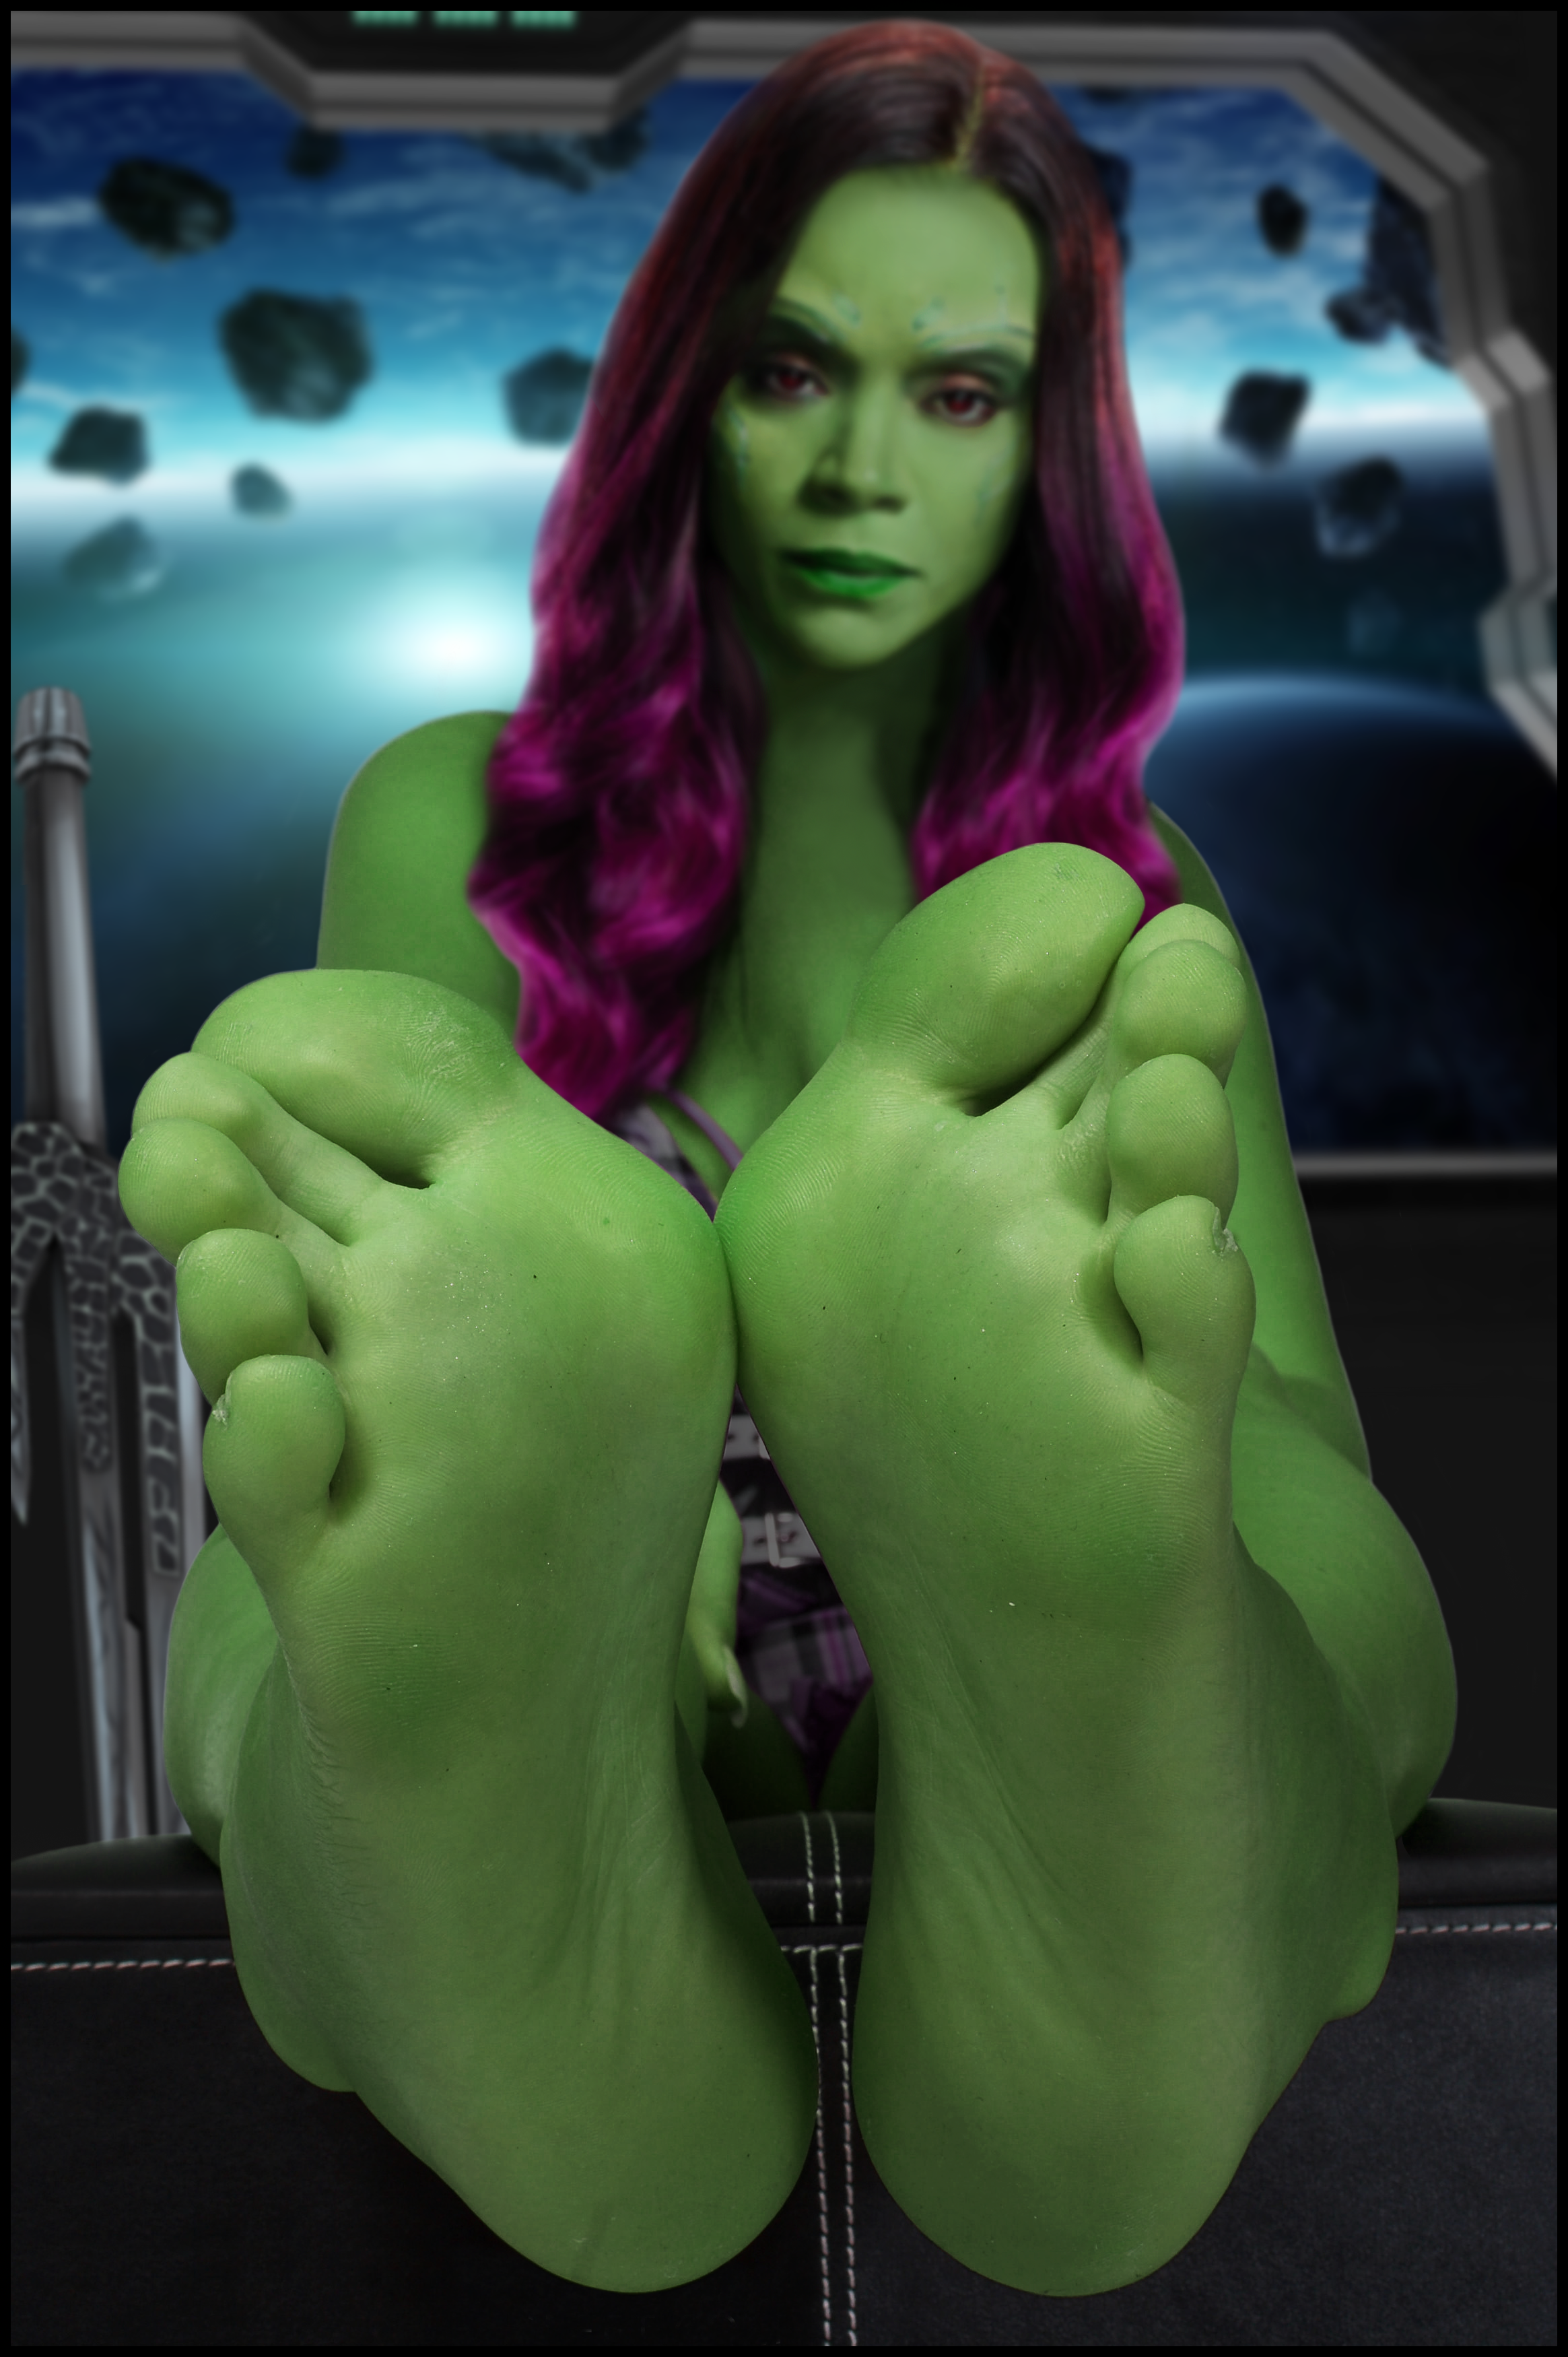 Gamora Feet (Zoe Saldana) by devillisimo666 on DeviantArt